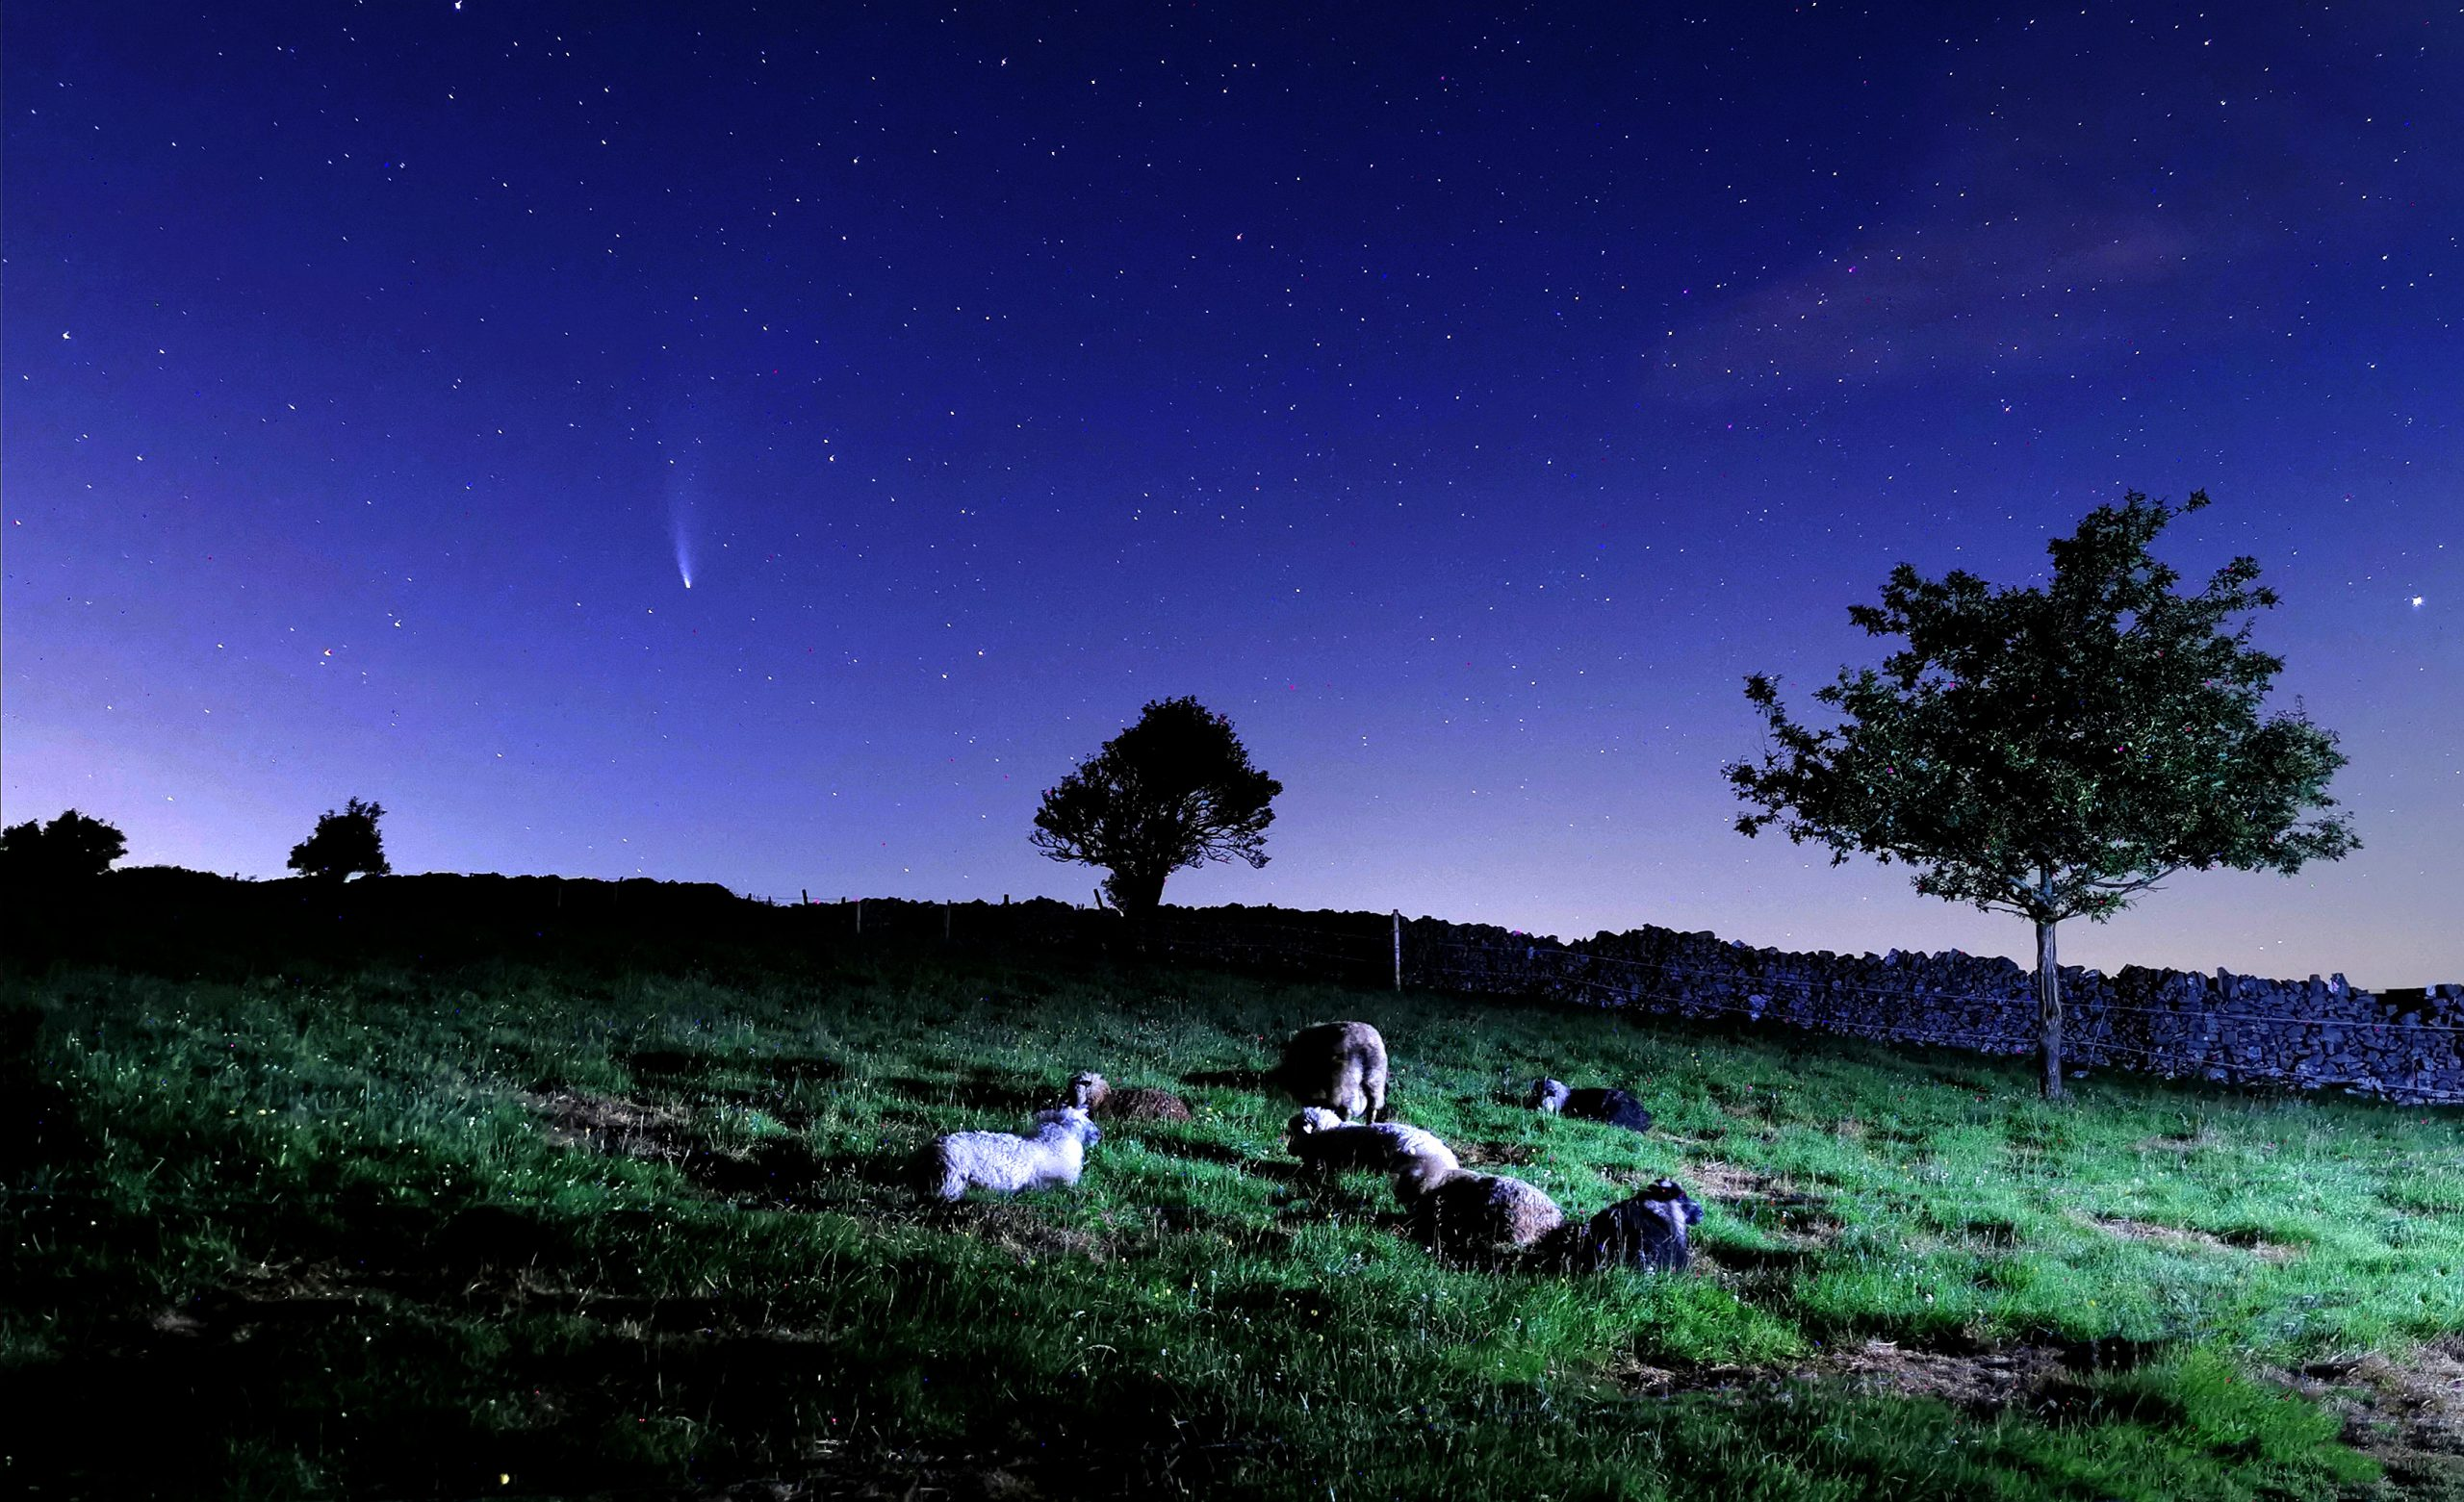 Rob Eavis Photo 2 - Uilleam surround by his lambs, under Comet Neowise